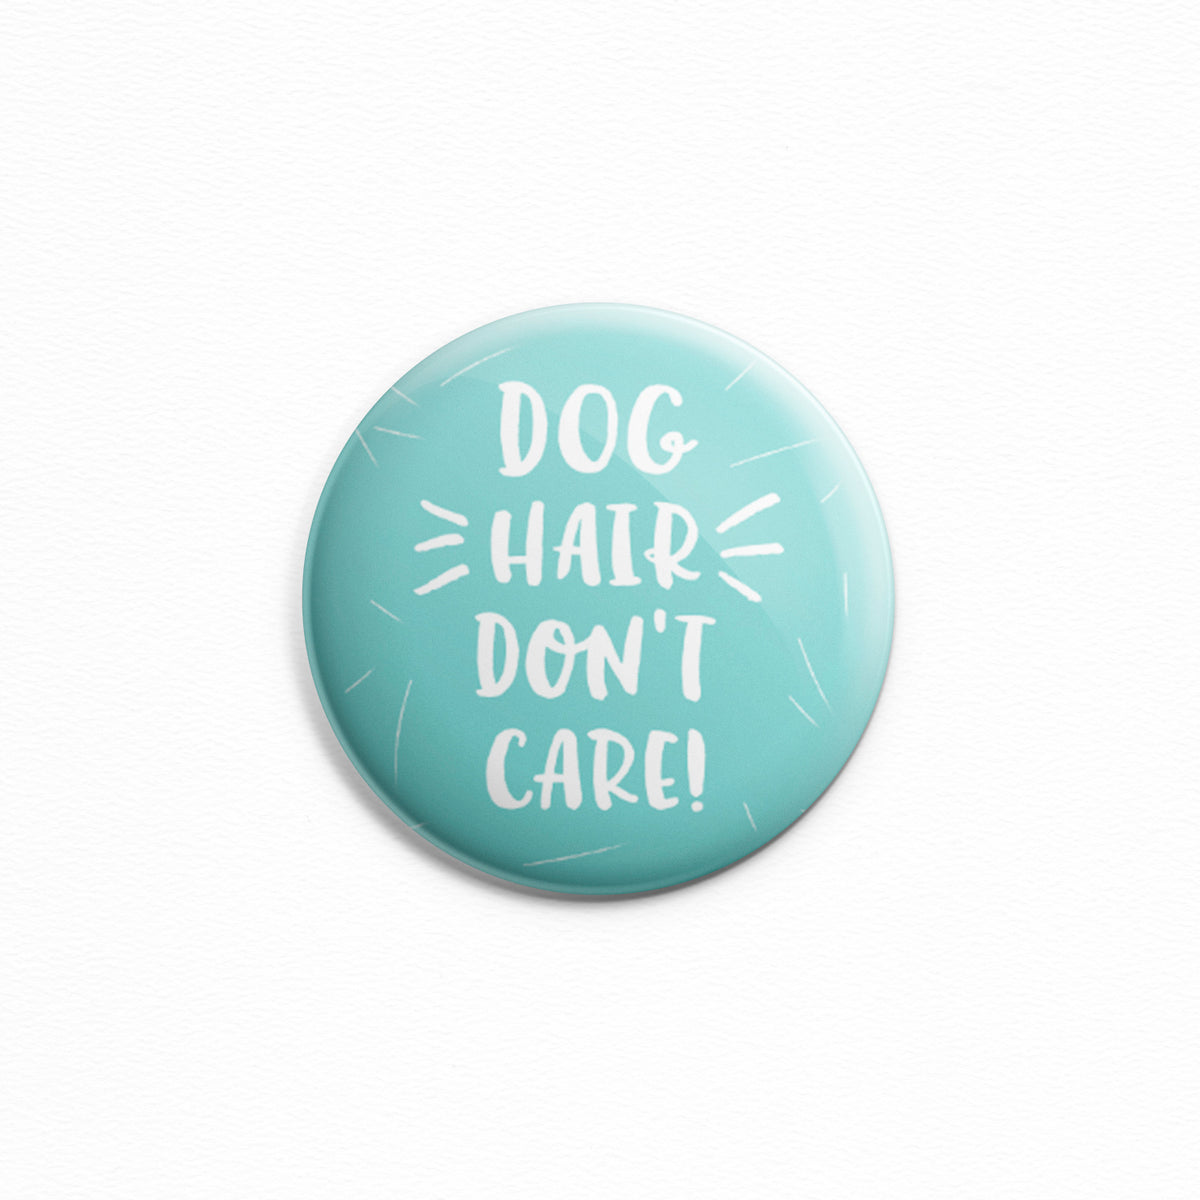 Dog Hair Don't Care - Button or magnet for dog lovers by My Cat Is People.